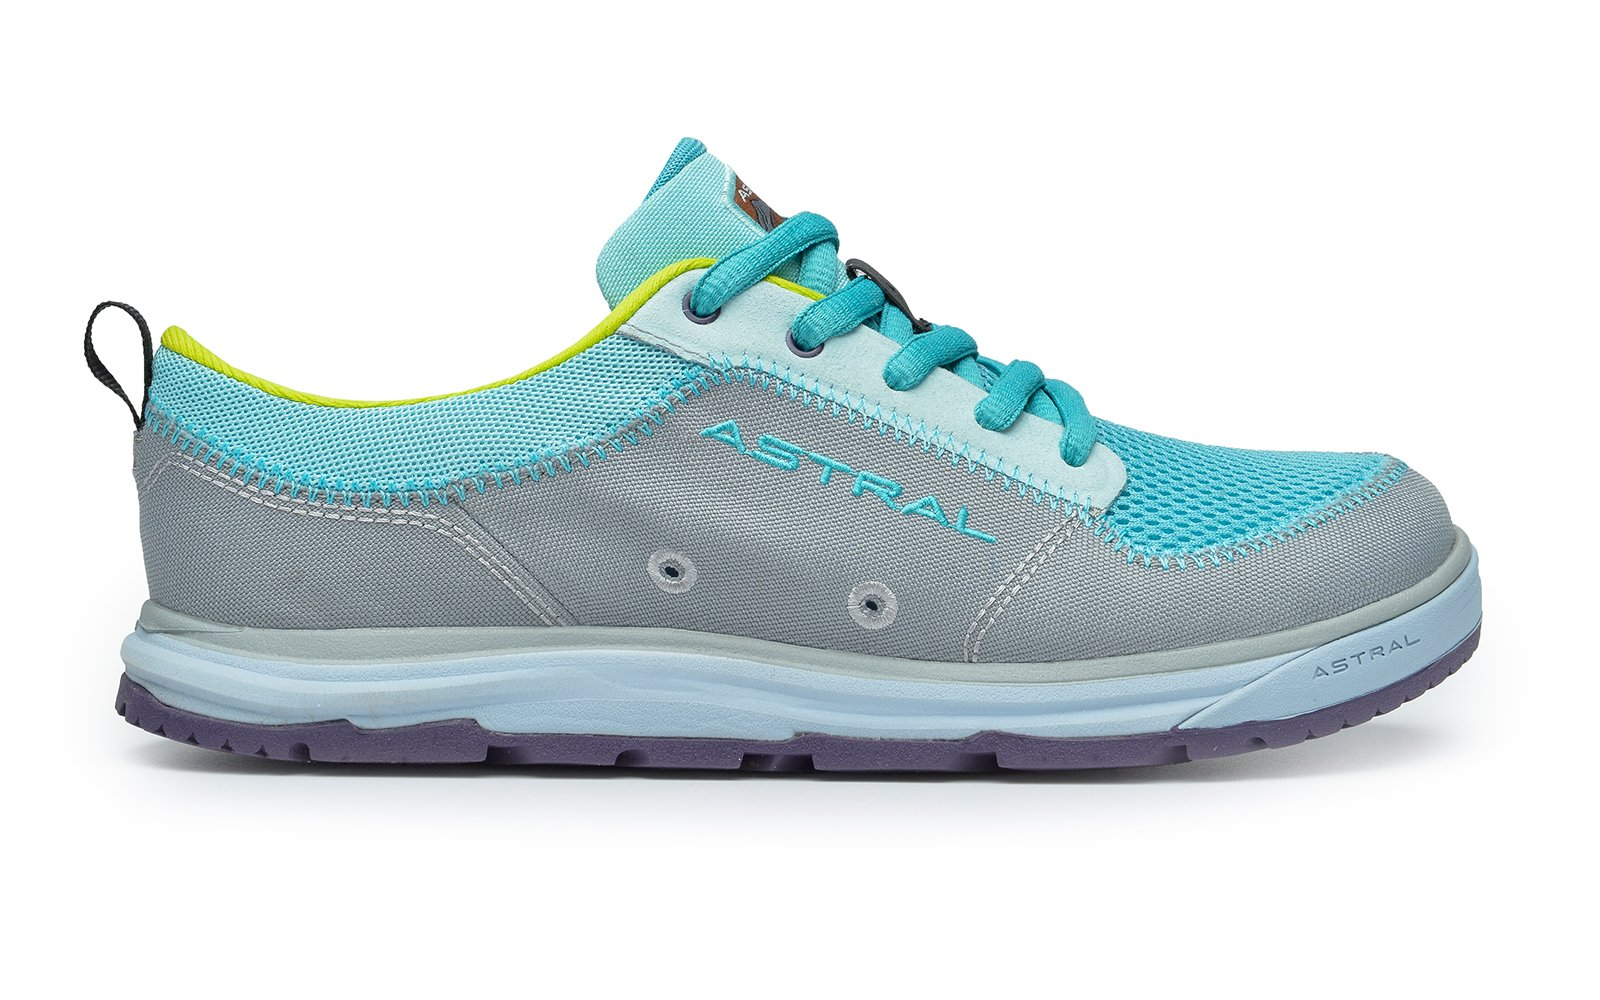 Astral Brewess 2.0 Women's Water Shoe in Turquoise Gray